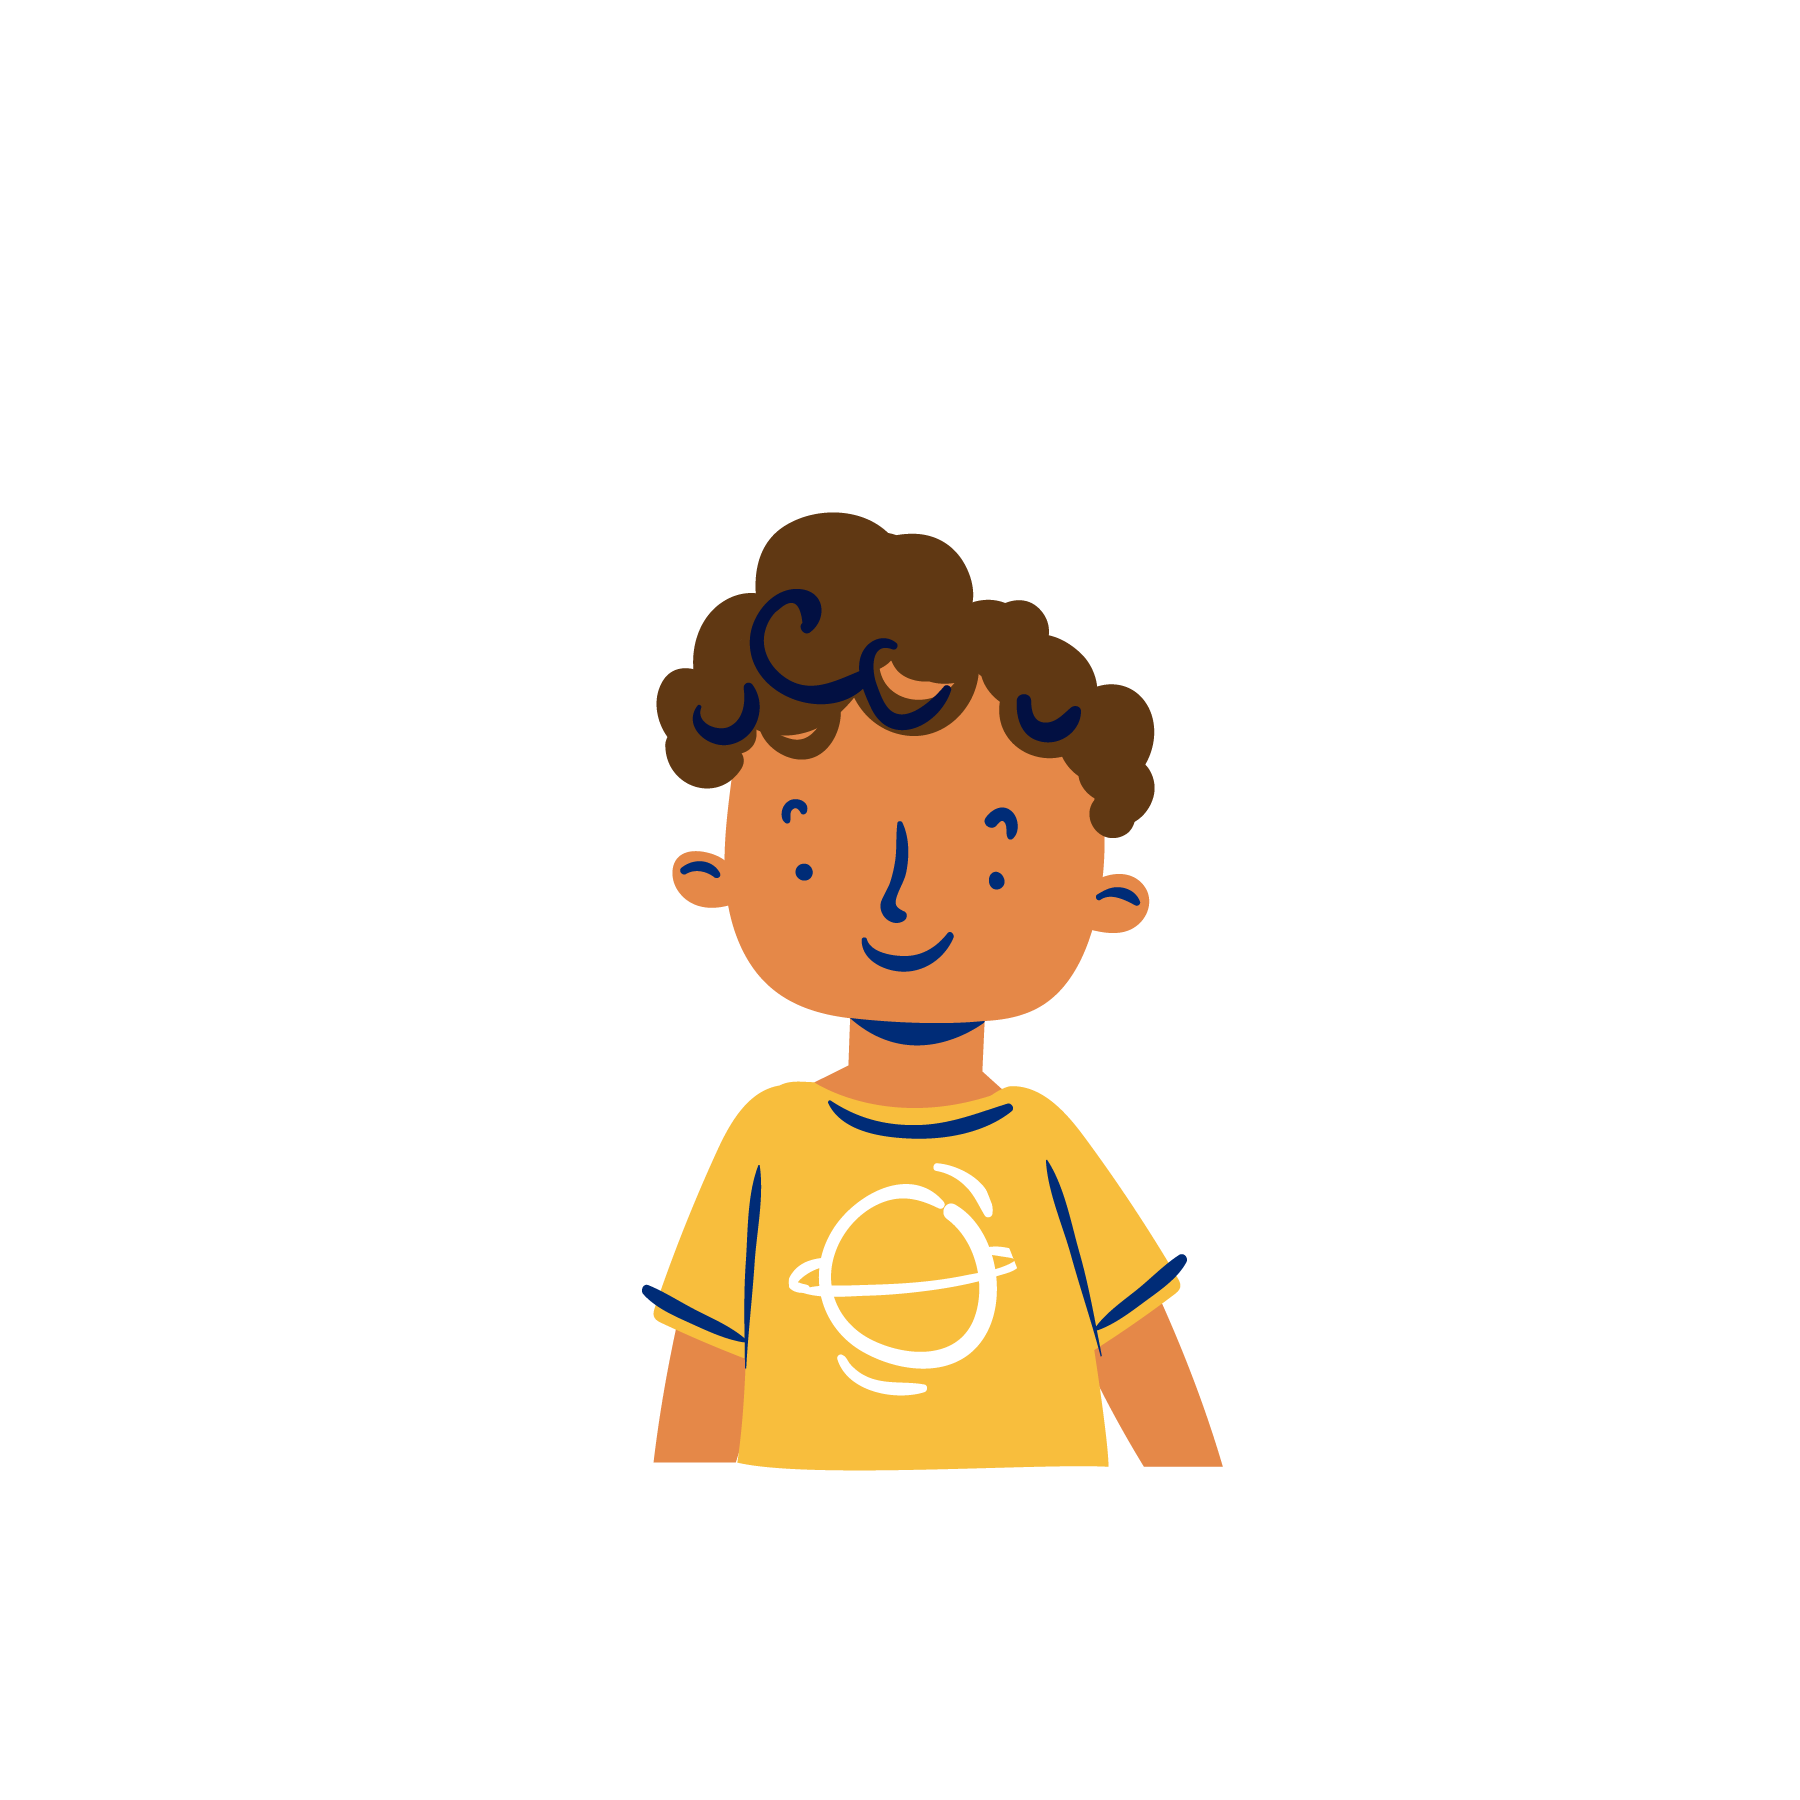 kid_icon.png